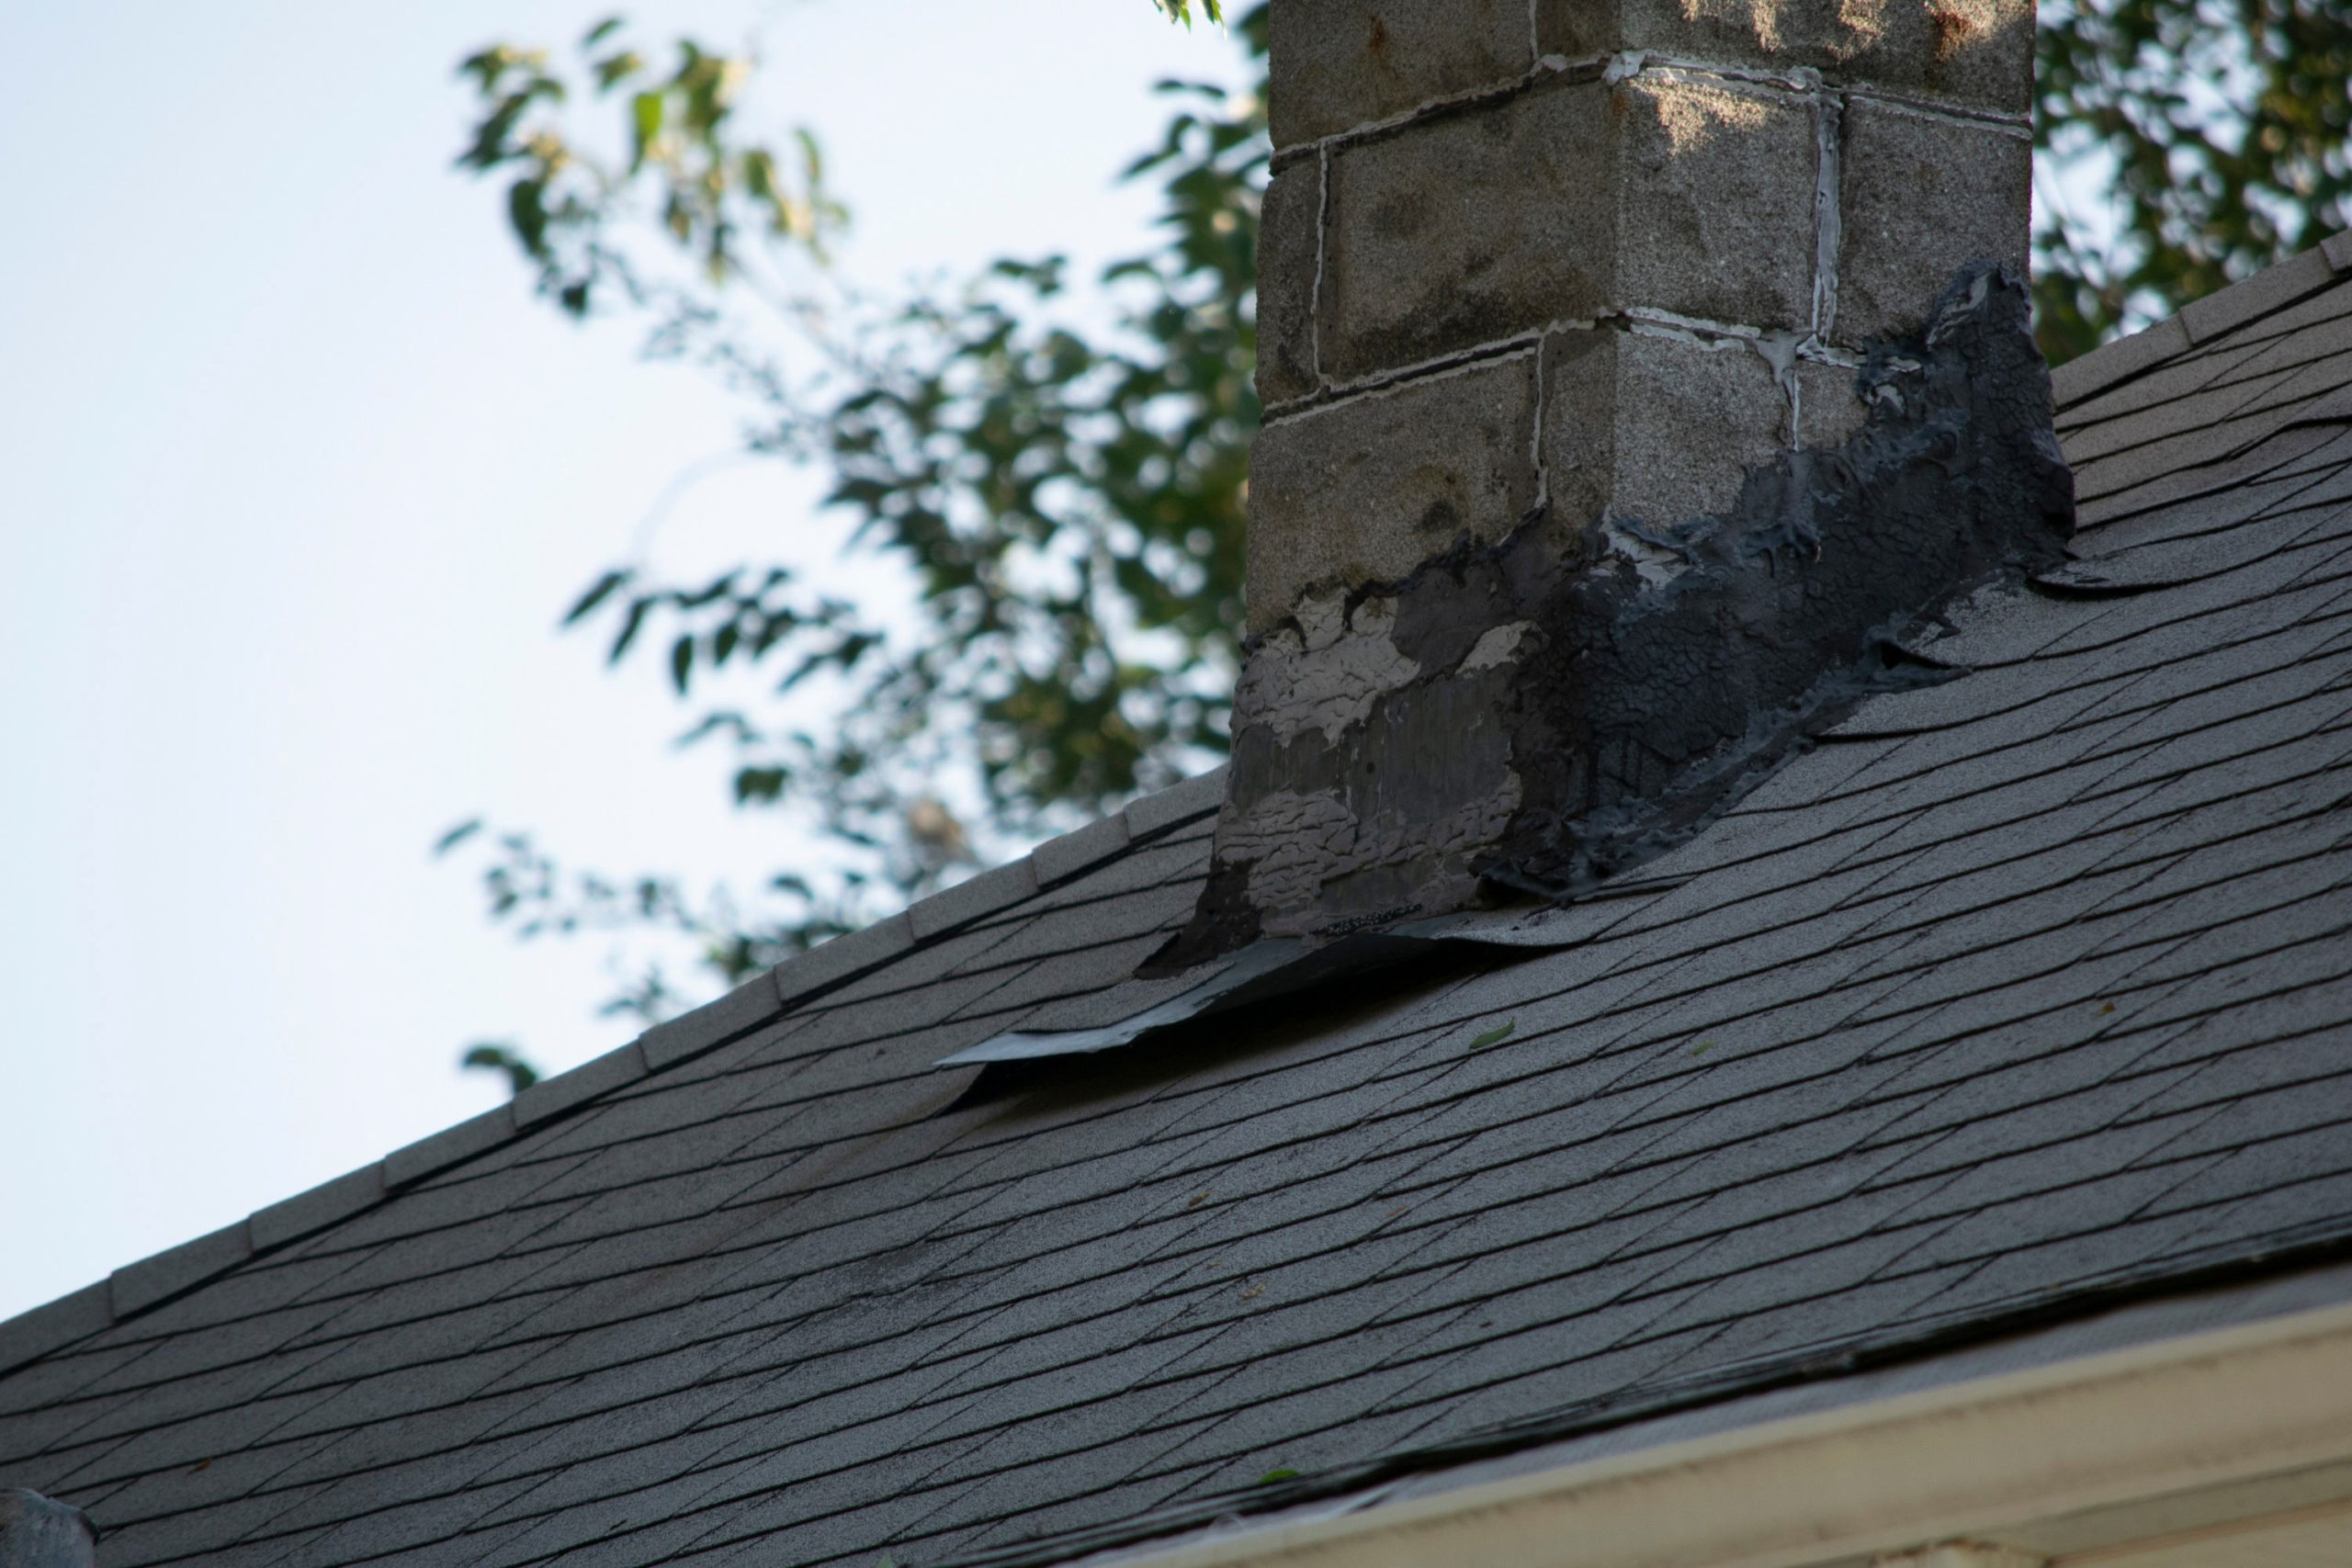 Roof flashing lifting and breaking around a chimney